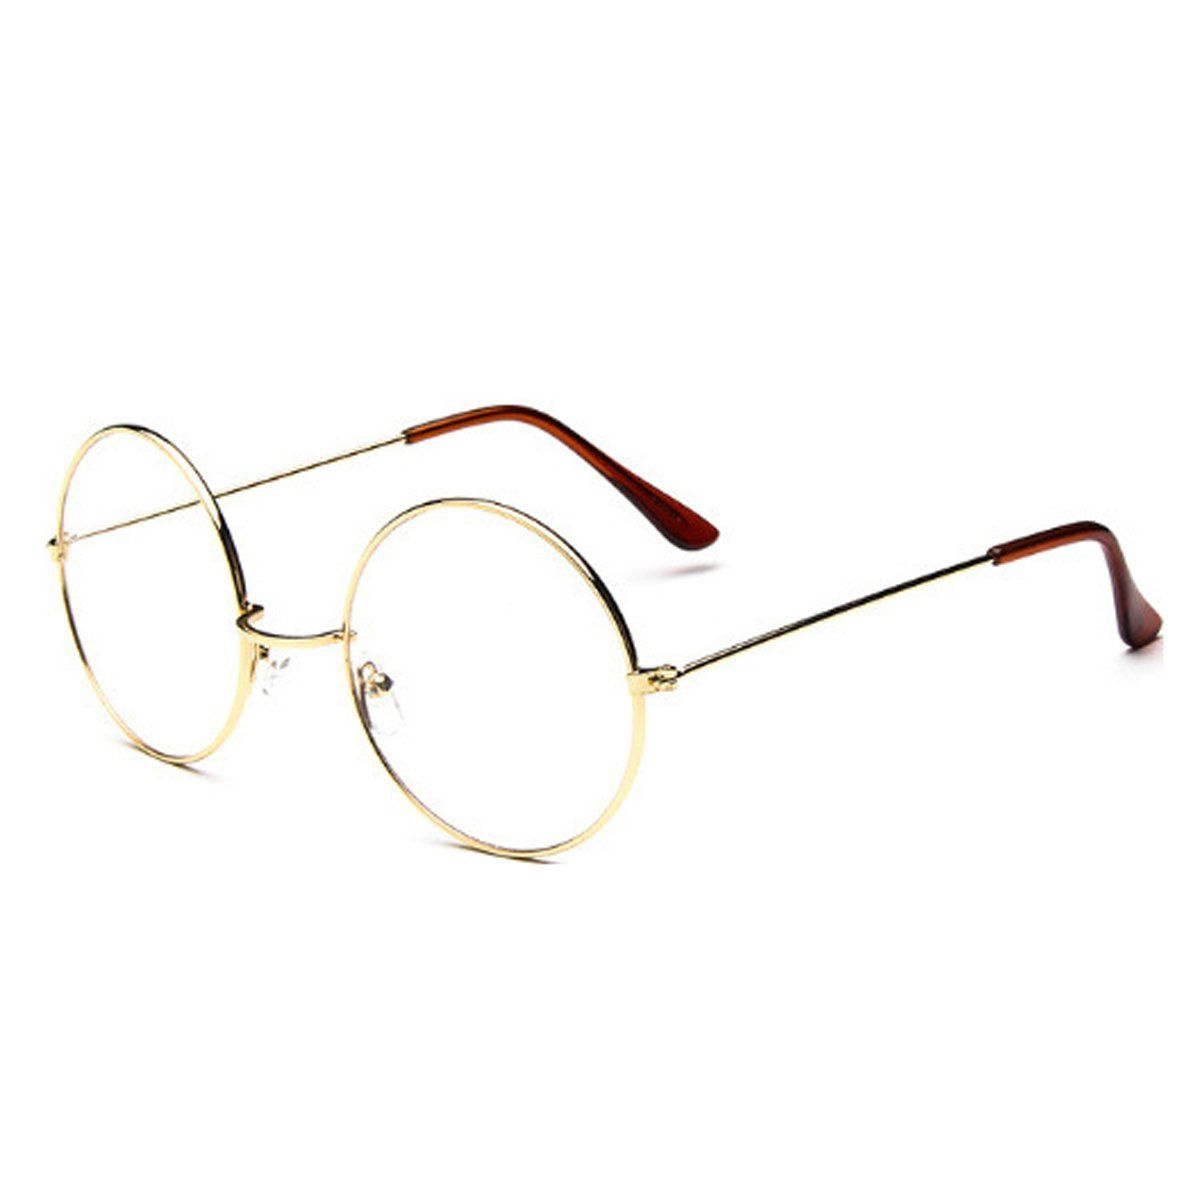 4ee788ce9 Women Men Large Oversized Metal Frame Clear Lens Round Circle Eye Glasses  ...